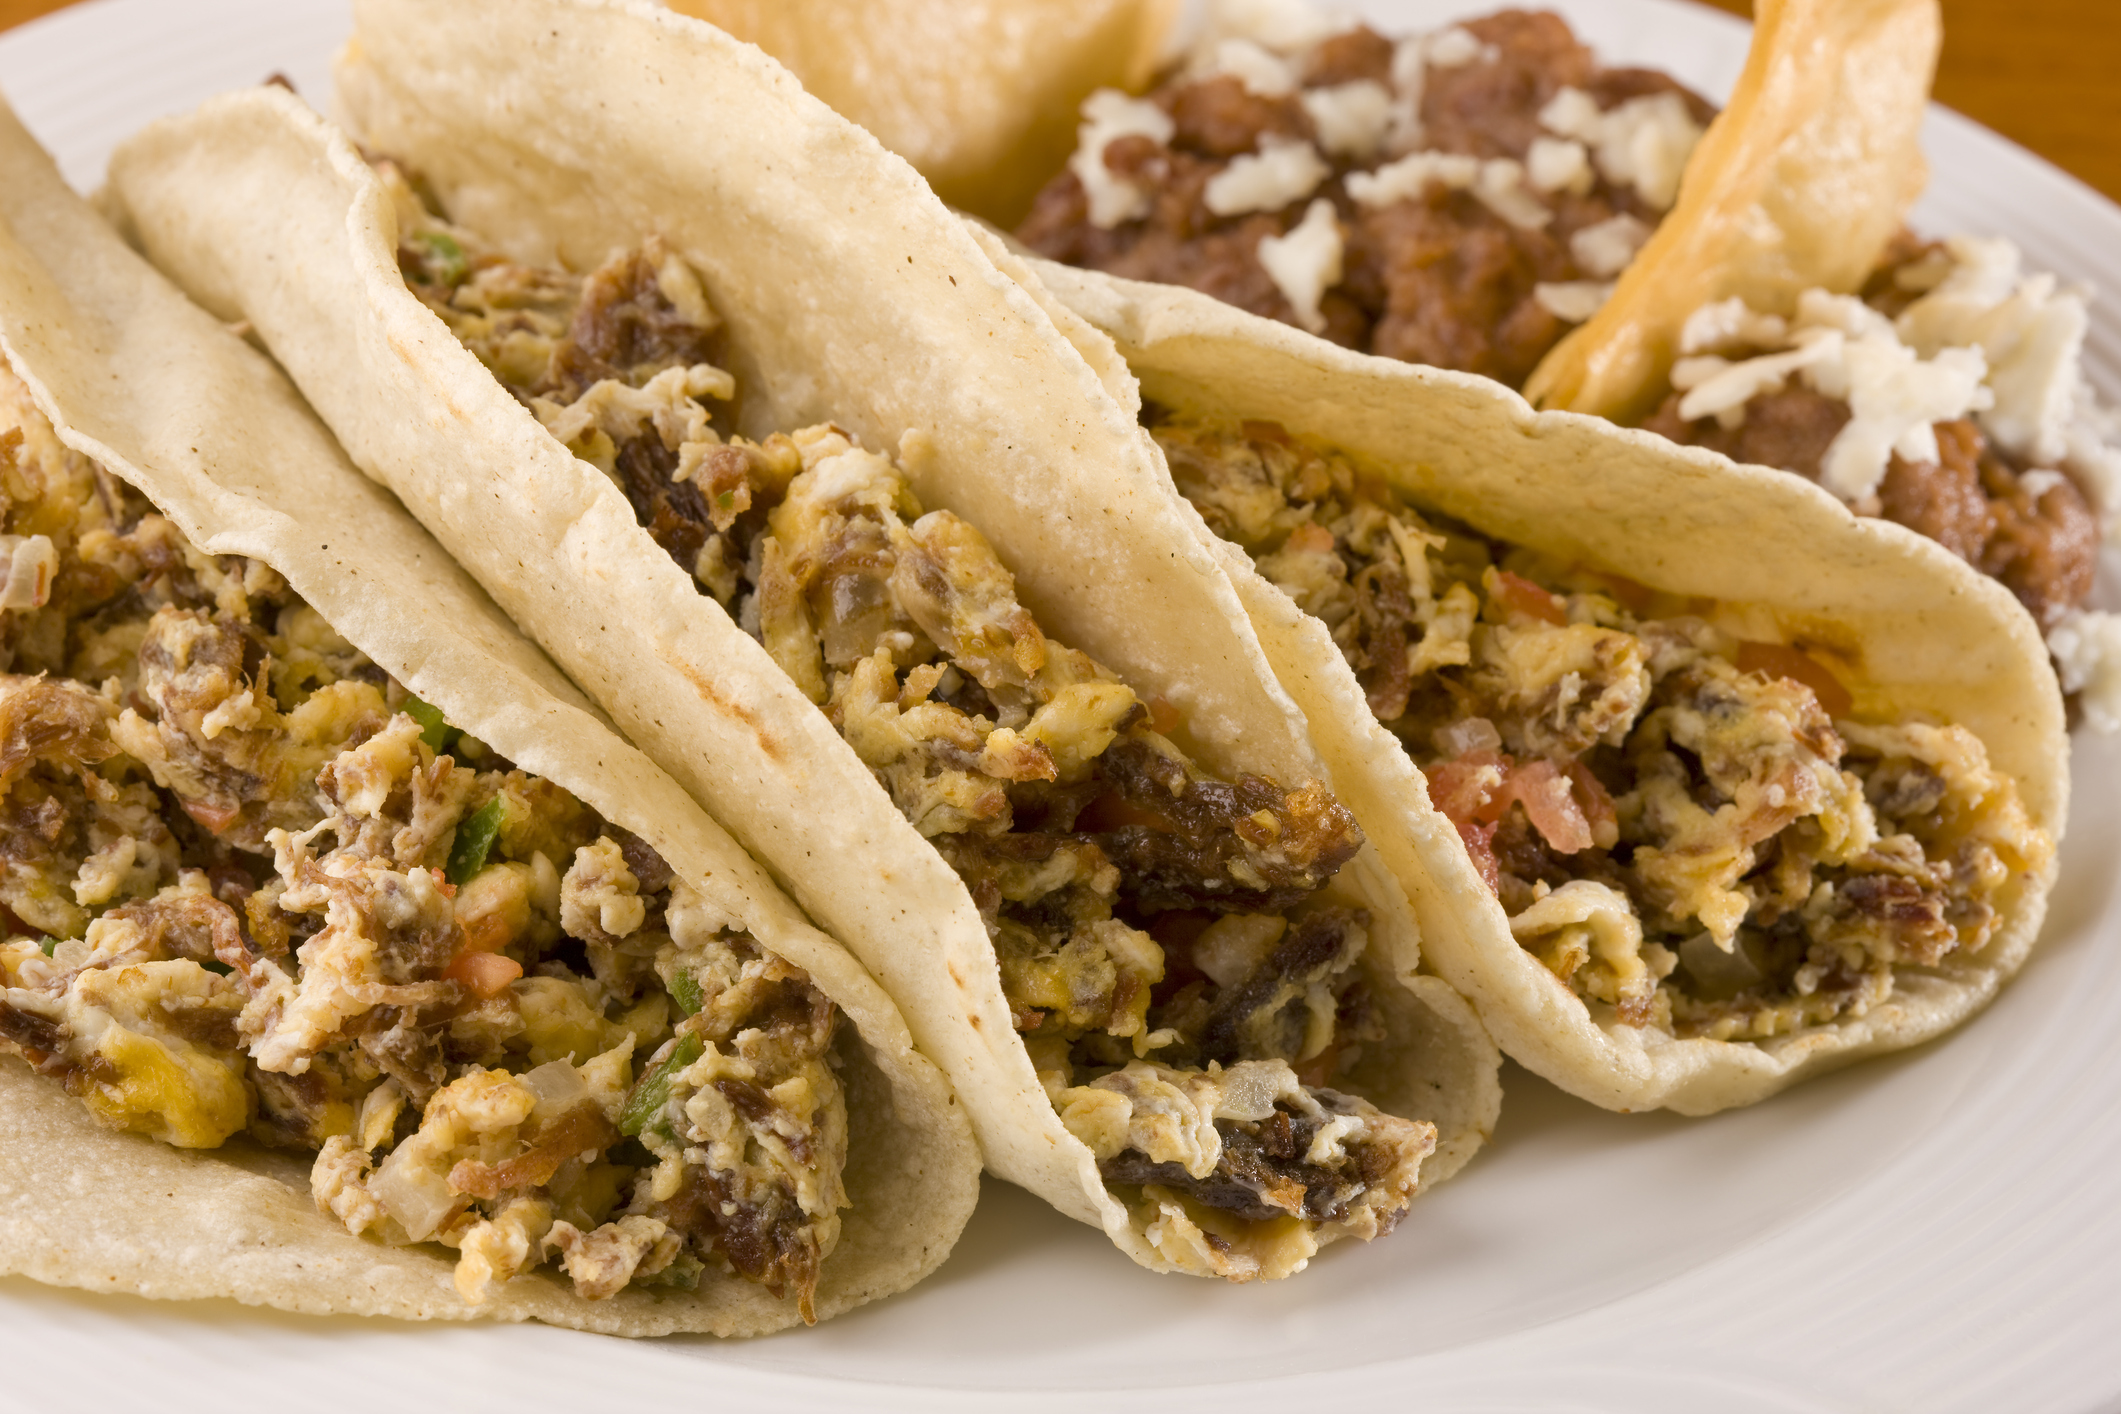 The best breakfast tacos in Corpus Christi usually begin with homemade tortillas. What goes inside depends on where you go to get them. We have some tasty suggestions.